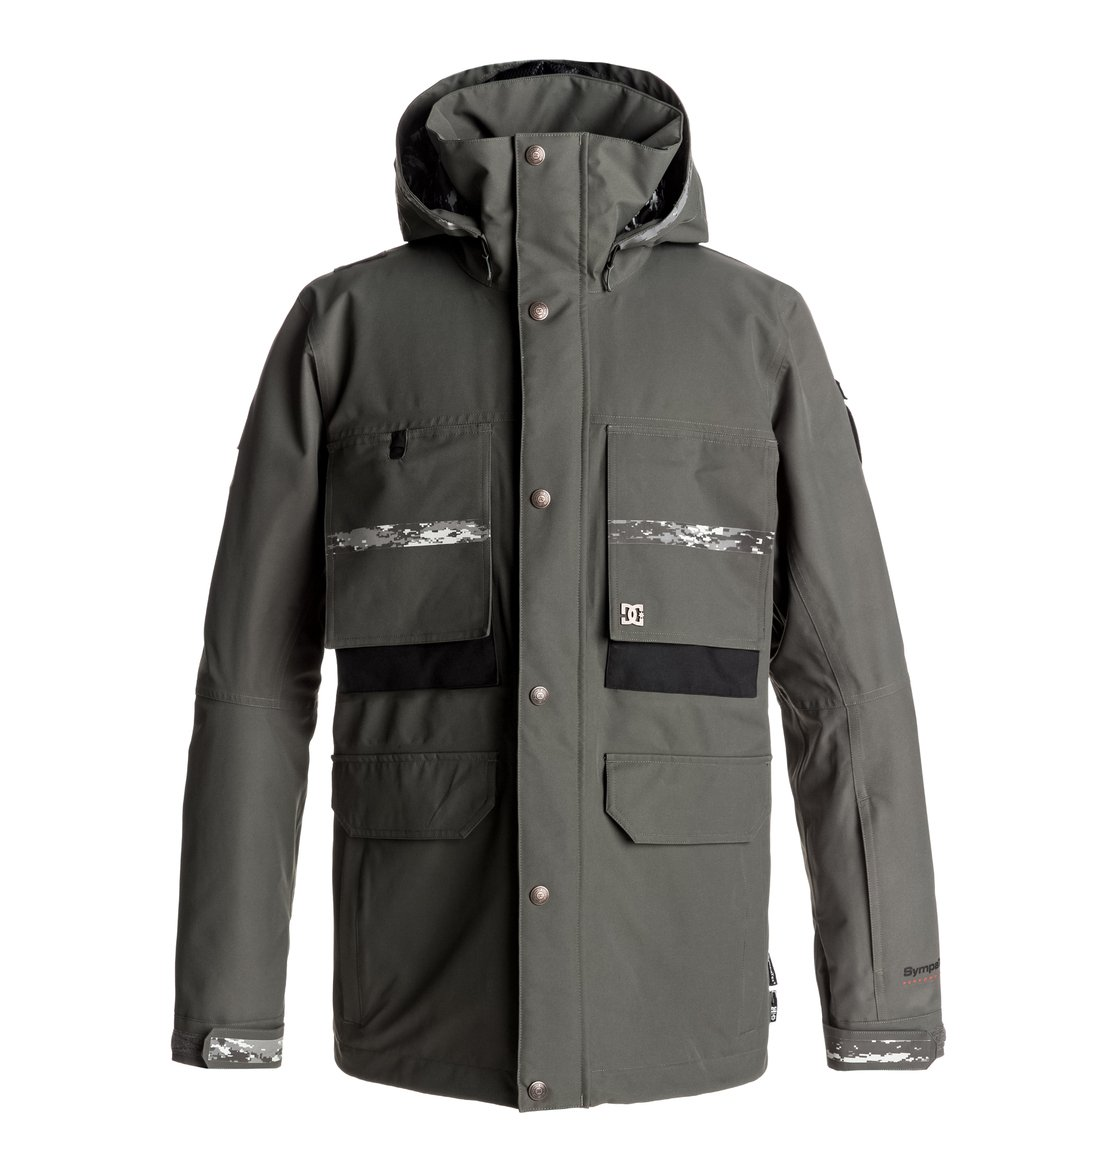 Company SPT - Snow Jacket